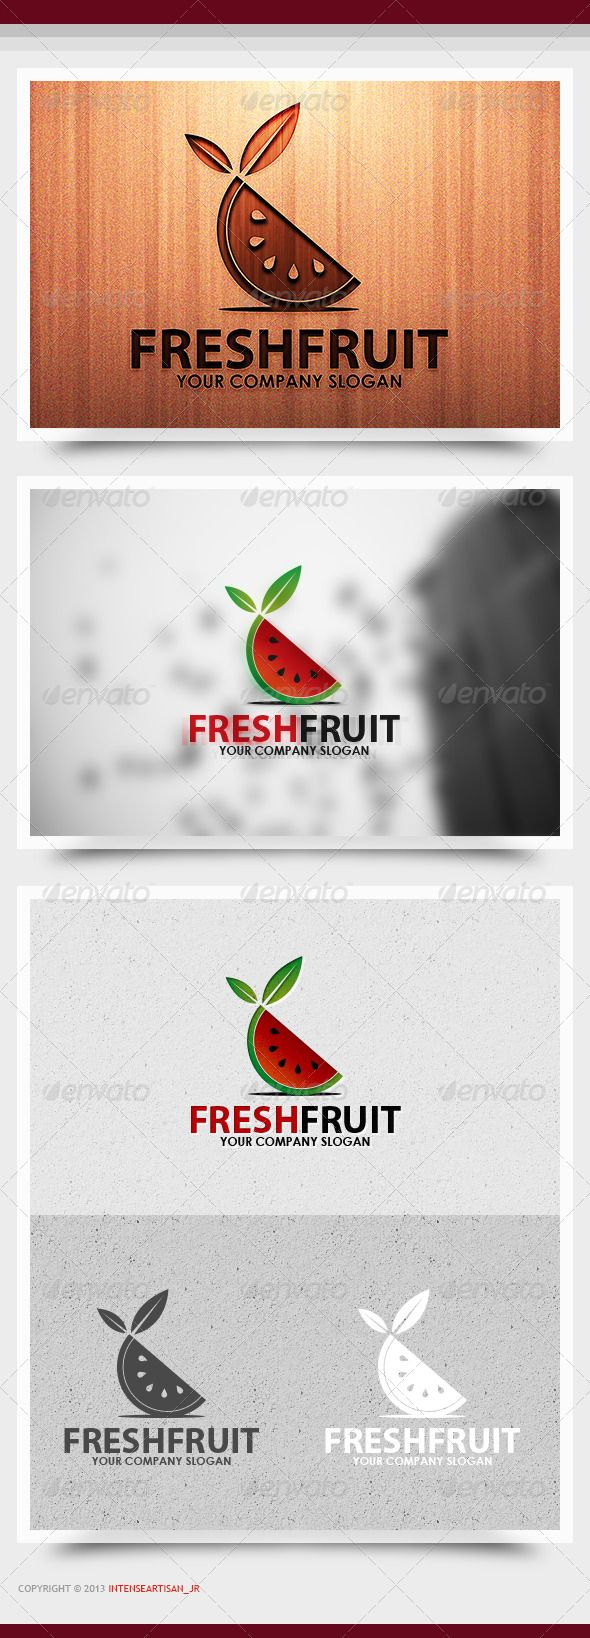 Fresh Fruit Logo Template  #GraphicRiver            FRESH FRUIT LOGO TEMPLATE  FEATURES:  - 100% RESIZABLE/SCALABLE VECTOR  - ORGANIZED GROUP/LAYERS/NAMED  - PRIMARY LOGO + BLACK  WHITE INCLUDED  - PRINT READY   FILE INCLUDED:  - AI / EPS10 / PDF    FONT USED:  - Open Sans –  .fontsquirrel /fonts/open-sans                     Created: 2November13 GraphicsFilesIncluded: VectorEPS #AIIllustrator Layered: Yes MinimumAdobeCSVersion: CS Resolution: Resizable Tags: 2013logo #2014logo #attractive…